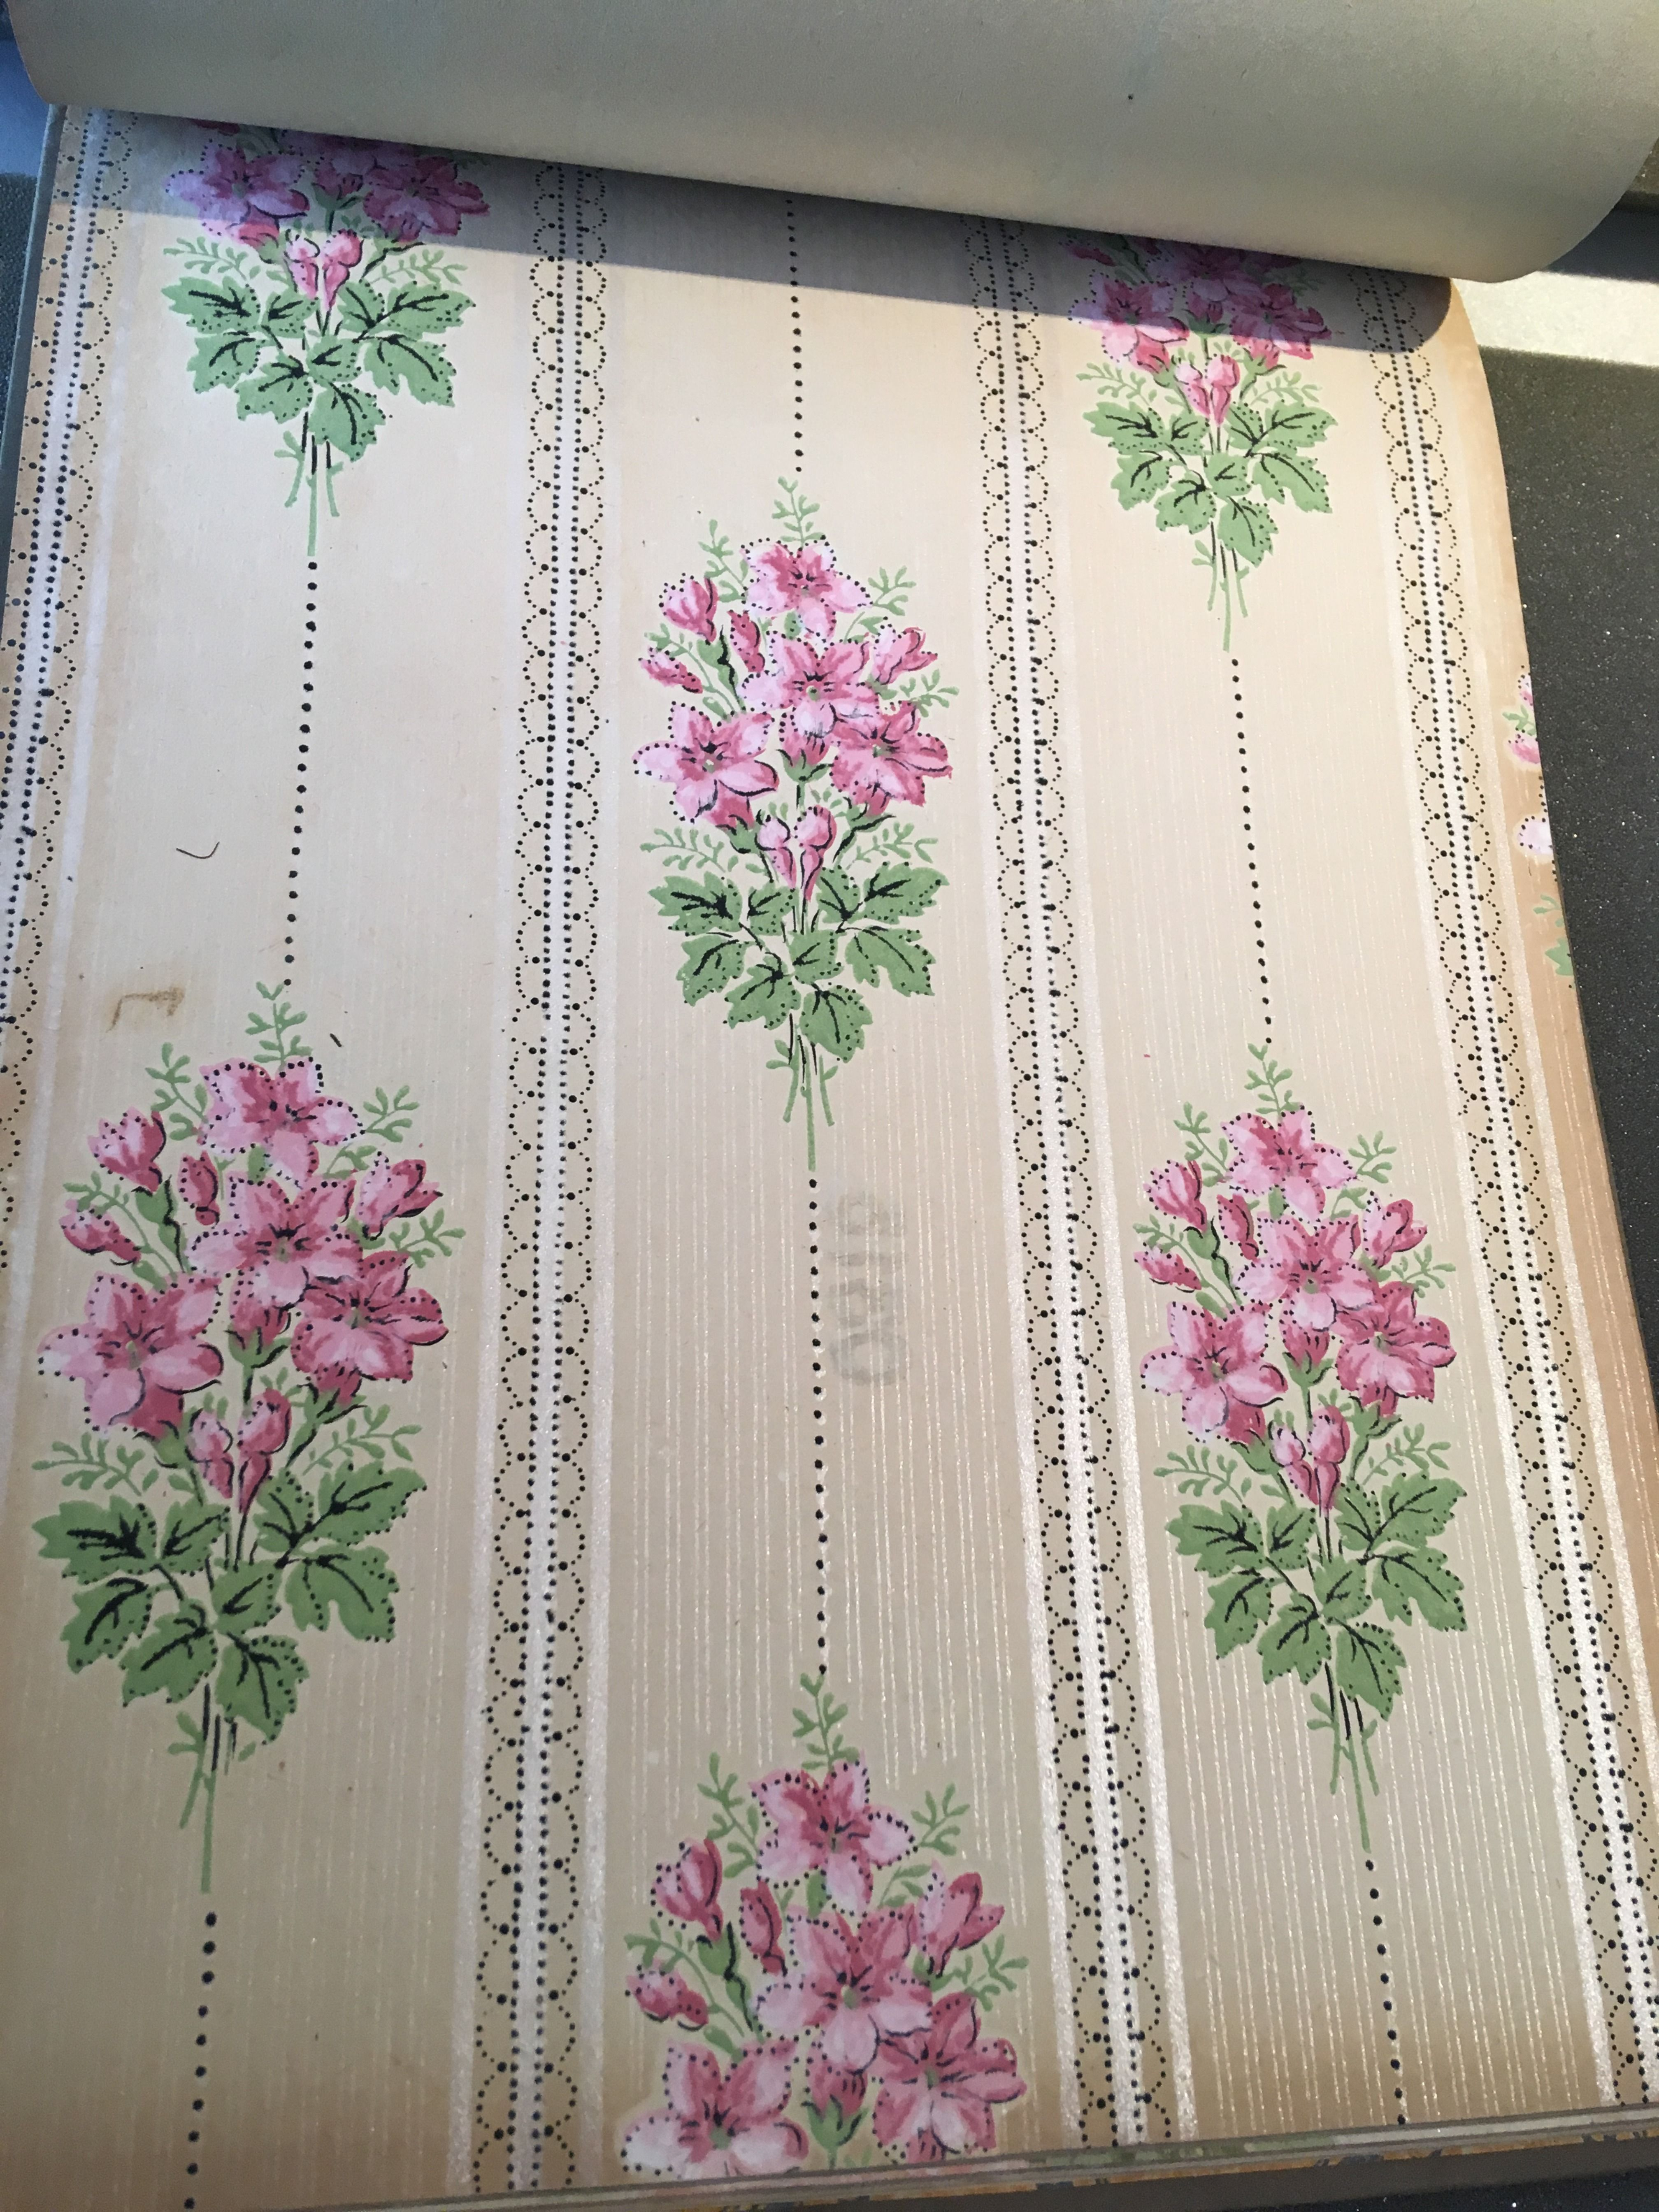 1914 antique Edwardian wallpaper with floral design from